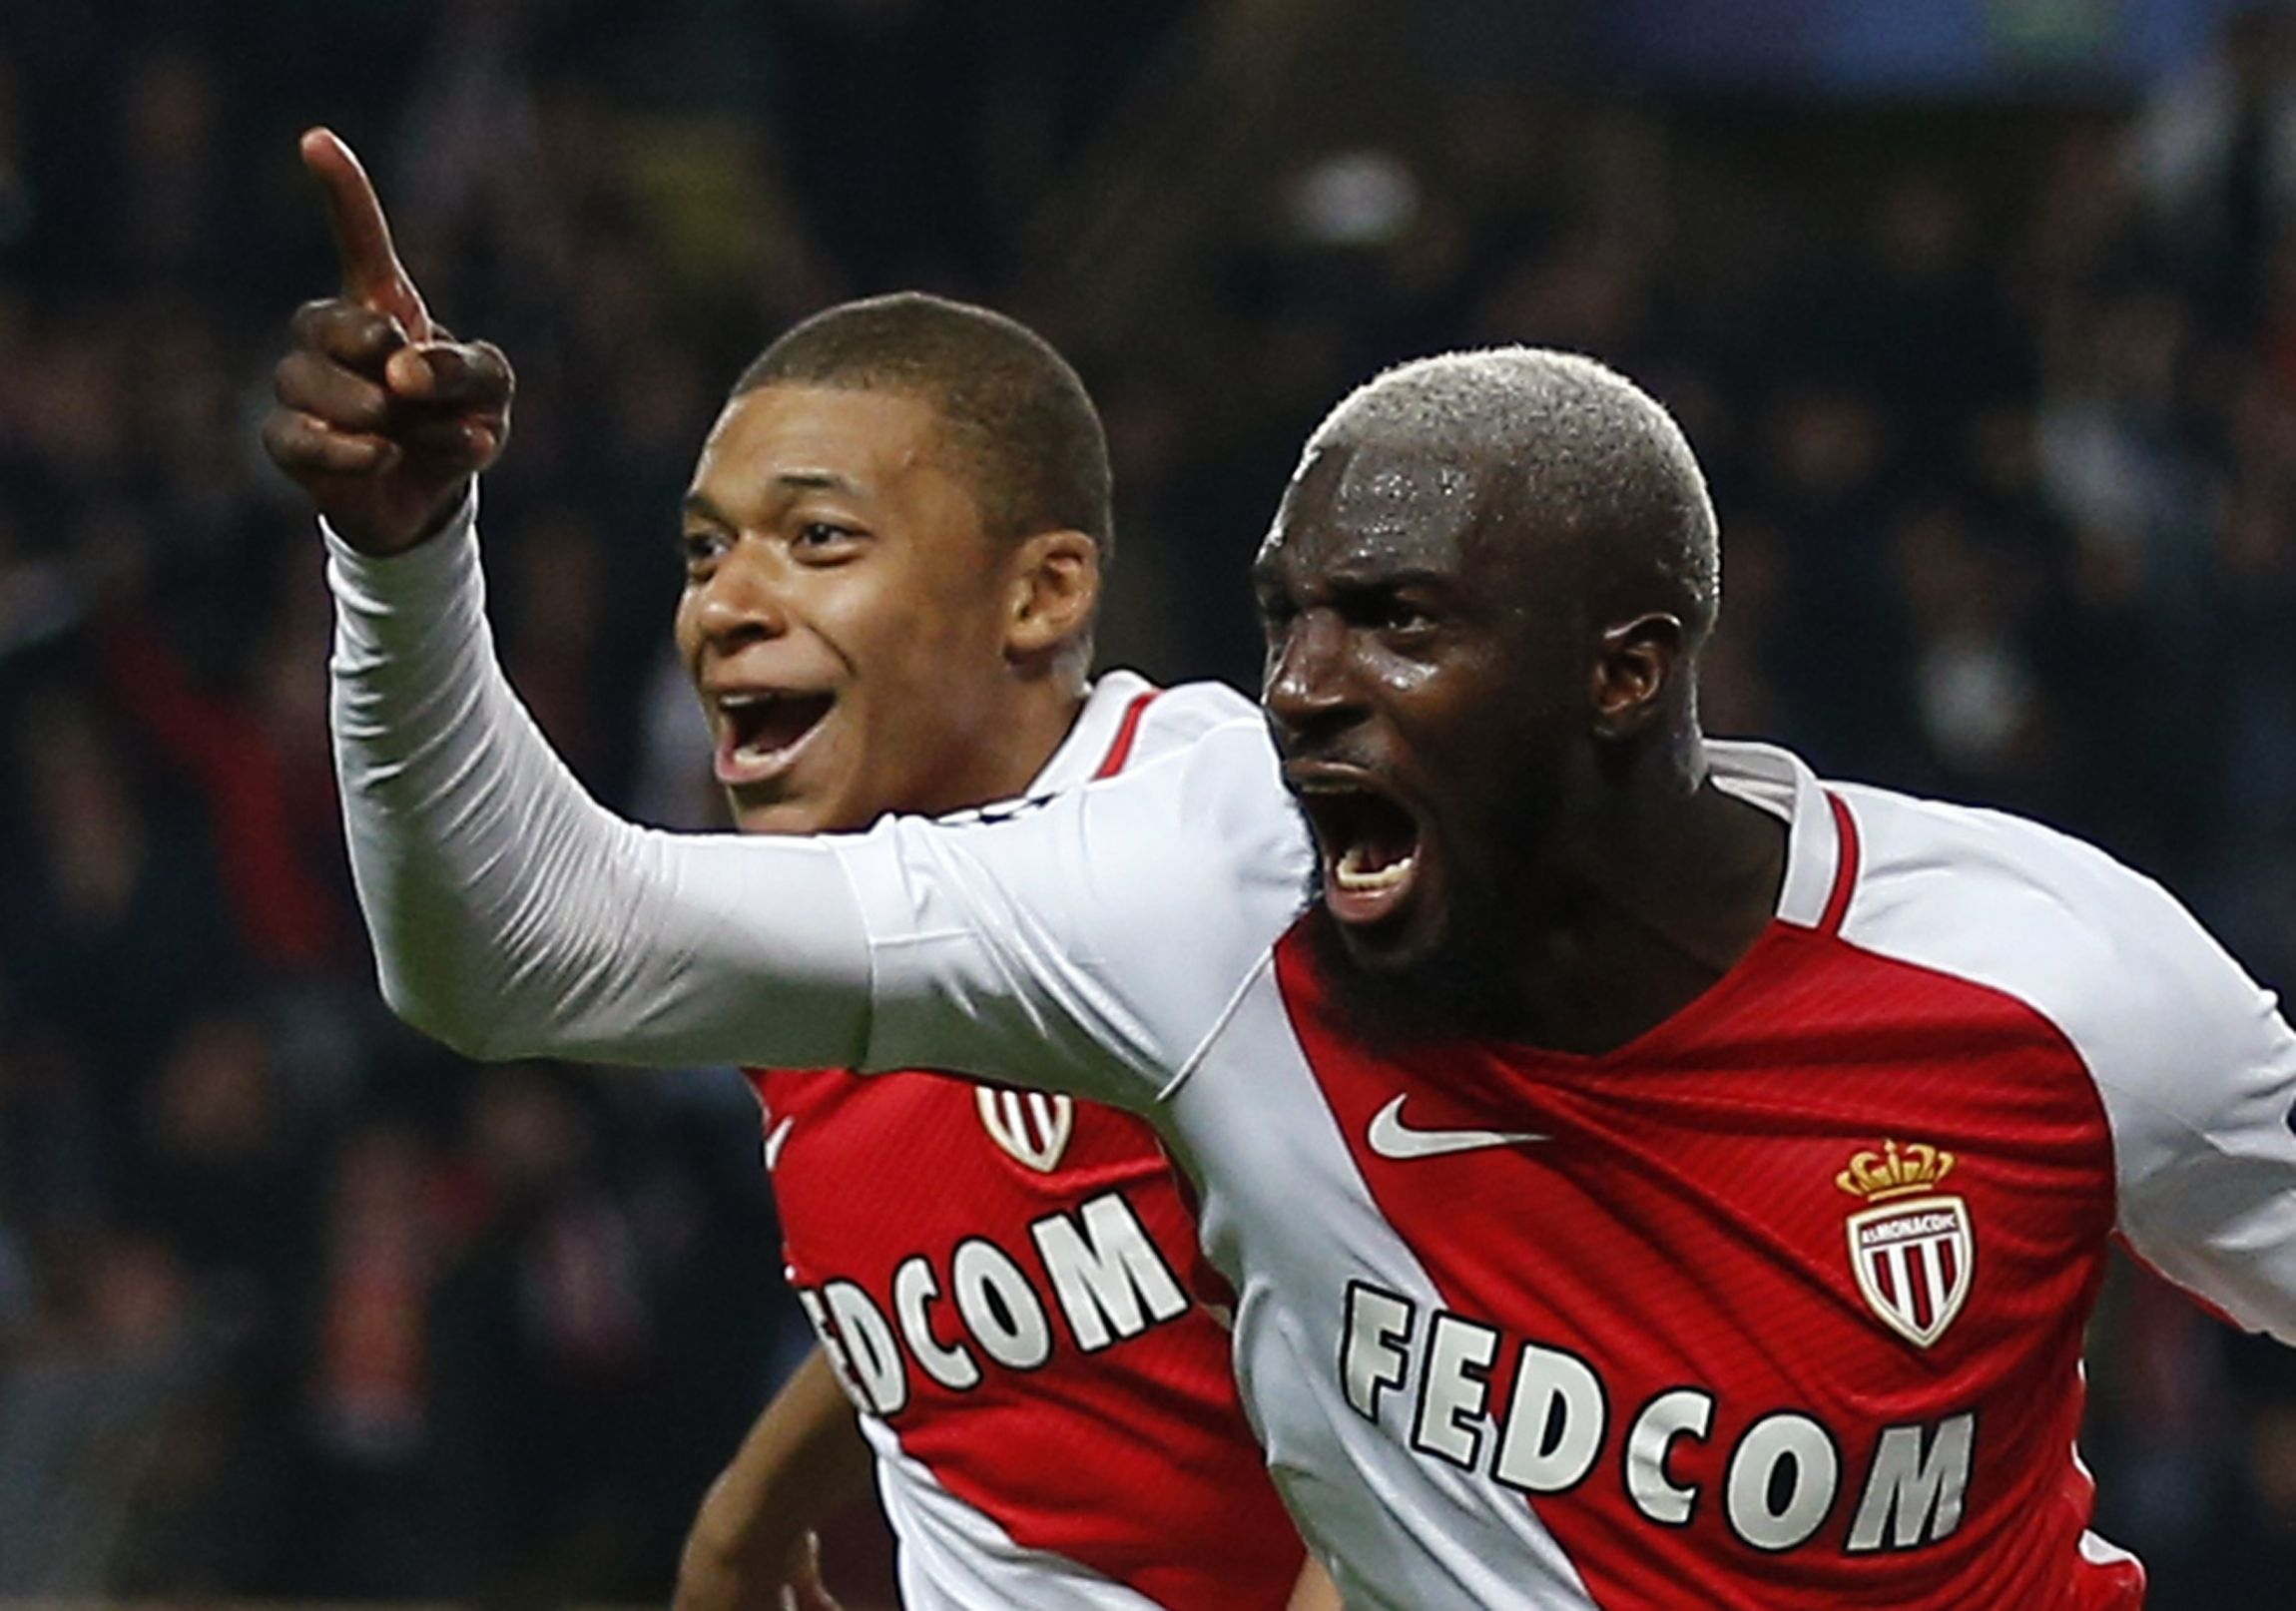 Monaco Star Ready to Sign for Manchester United on e Condition